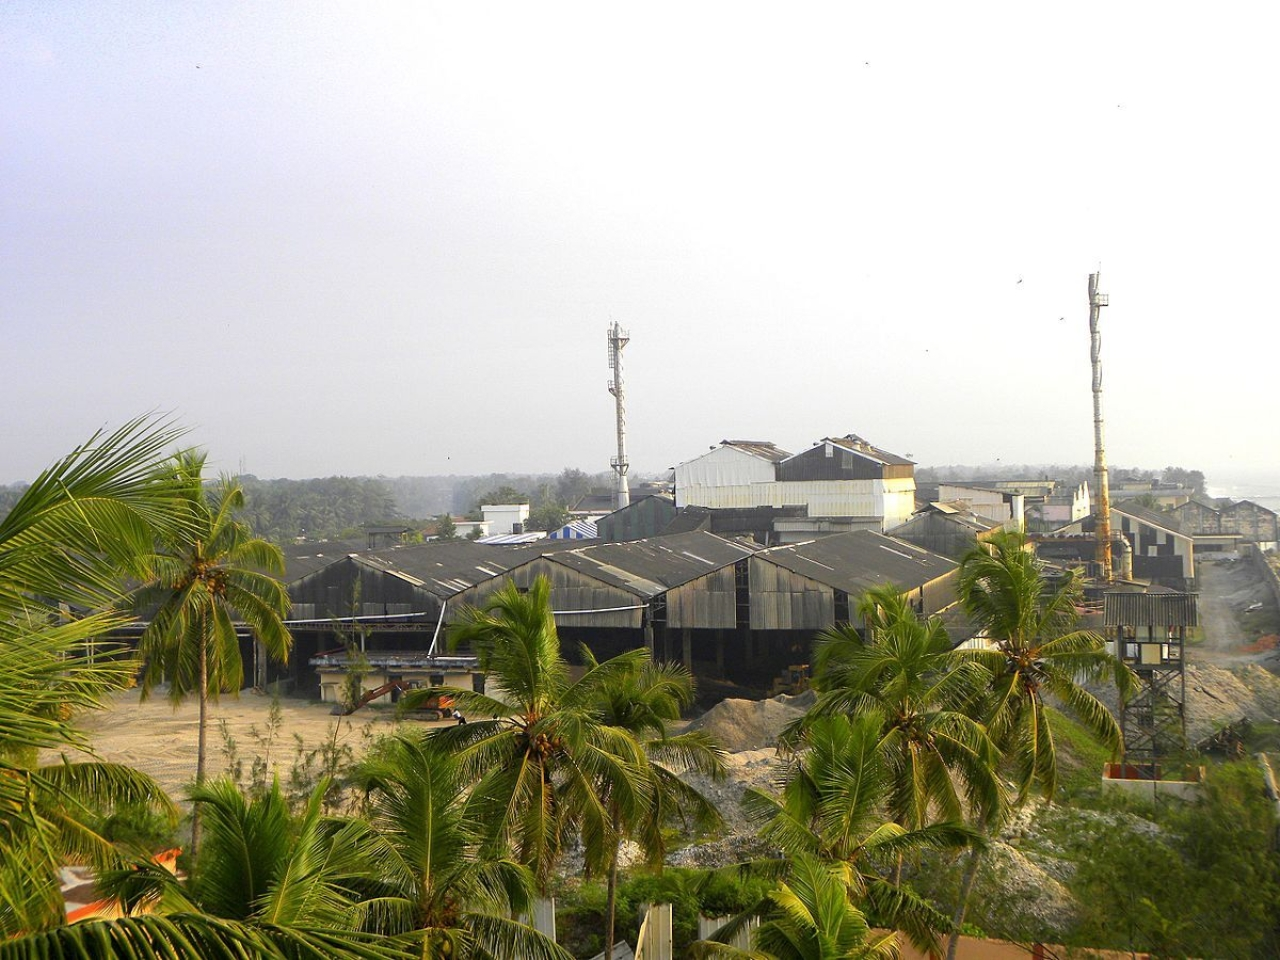 The government-owned Indian Rare Earths Limited premises.